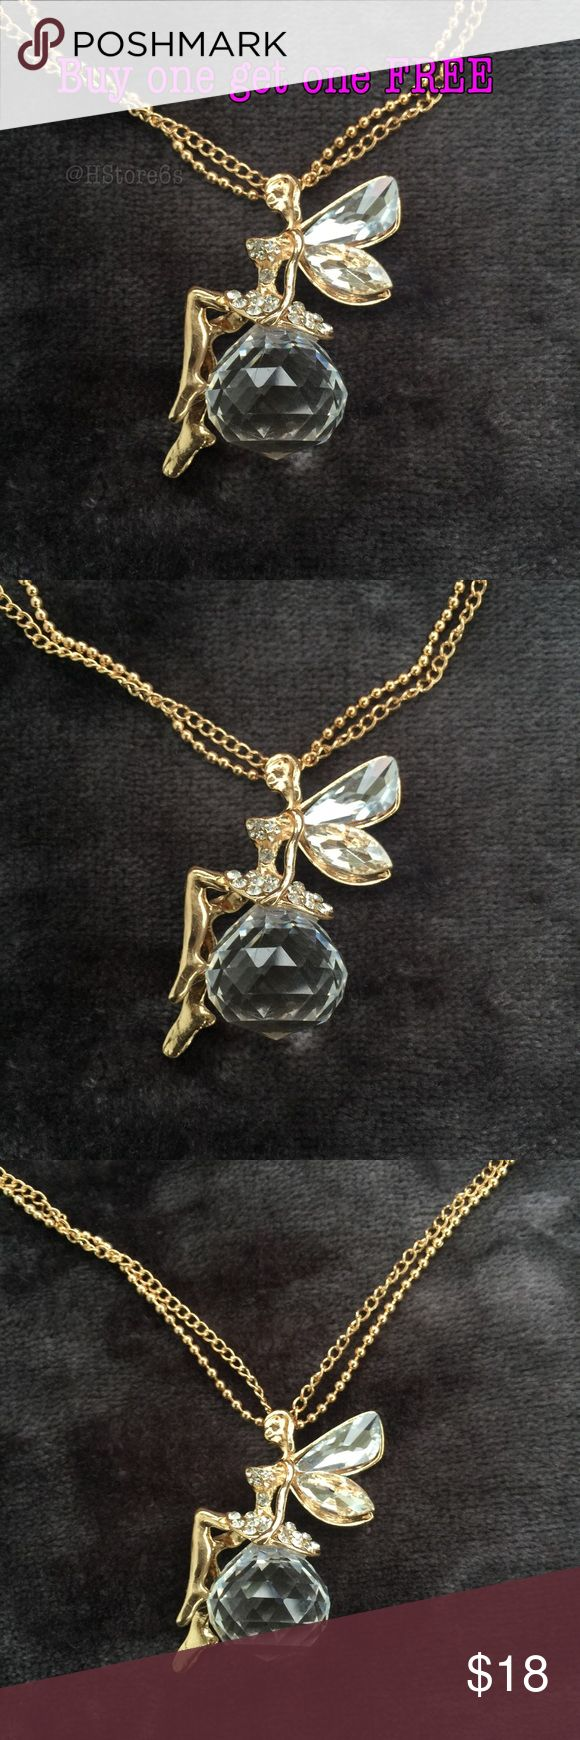 Crystal angel gold plated rhinestones necklace 😇 ***BUY 1 Get 1 FREE (equal or less value) - Price is firm except bundle - Bundle: 5% off (2 items), 10% off (3 items), 15% off (4 or more items) ***Please follow me for new listings.  Keyword to what I sell: silver plated jewelry white yellow gold rose gold earrings ring bracelet bangles necklace anklet bracelet baby small medium large huge hoop earrings. Stud earrings Fidget spinners  Dog cat toys cosmetics fashion jewelry emerald cut ring…